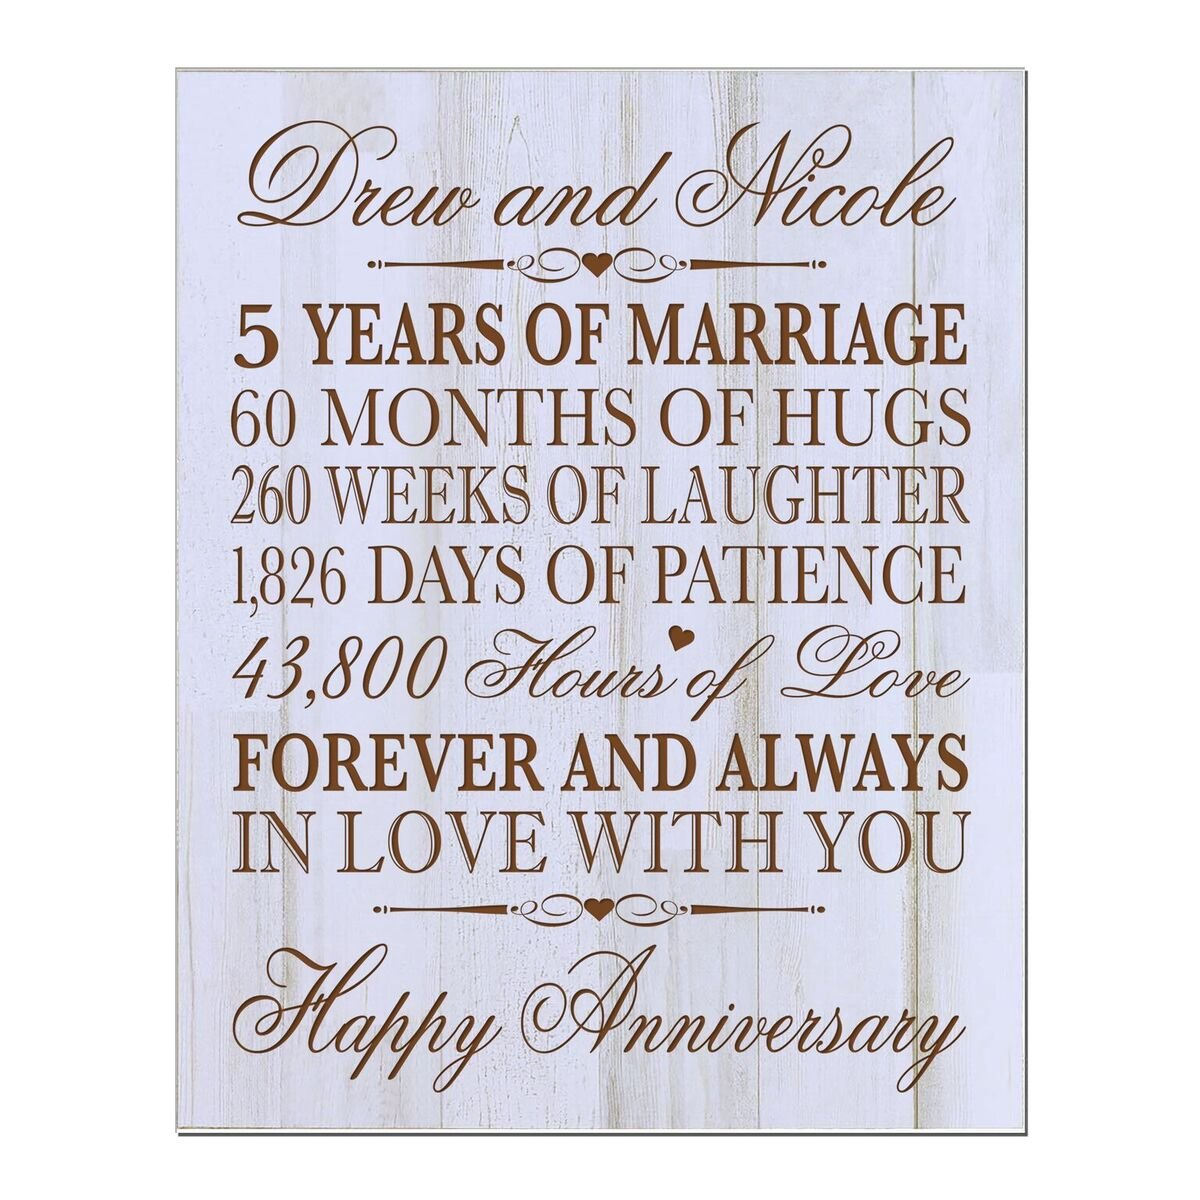 Personalized 5th Wedding Anniversary Wall Plaque Gifts for Couple, Custom Made 5th Anniversary Gifts for Her,5th Wedding Anniversary Gifts 12'' W X 15'' H Wall Plaque By LifeSong Milestones (DW)